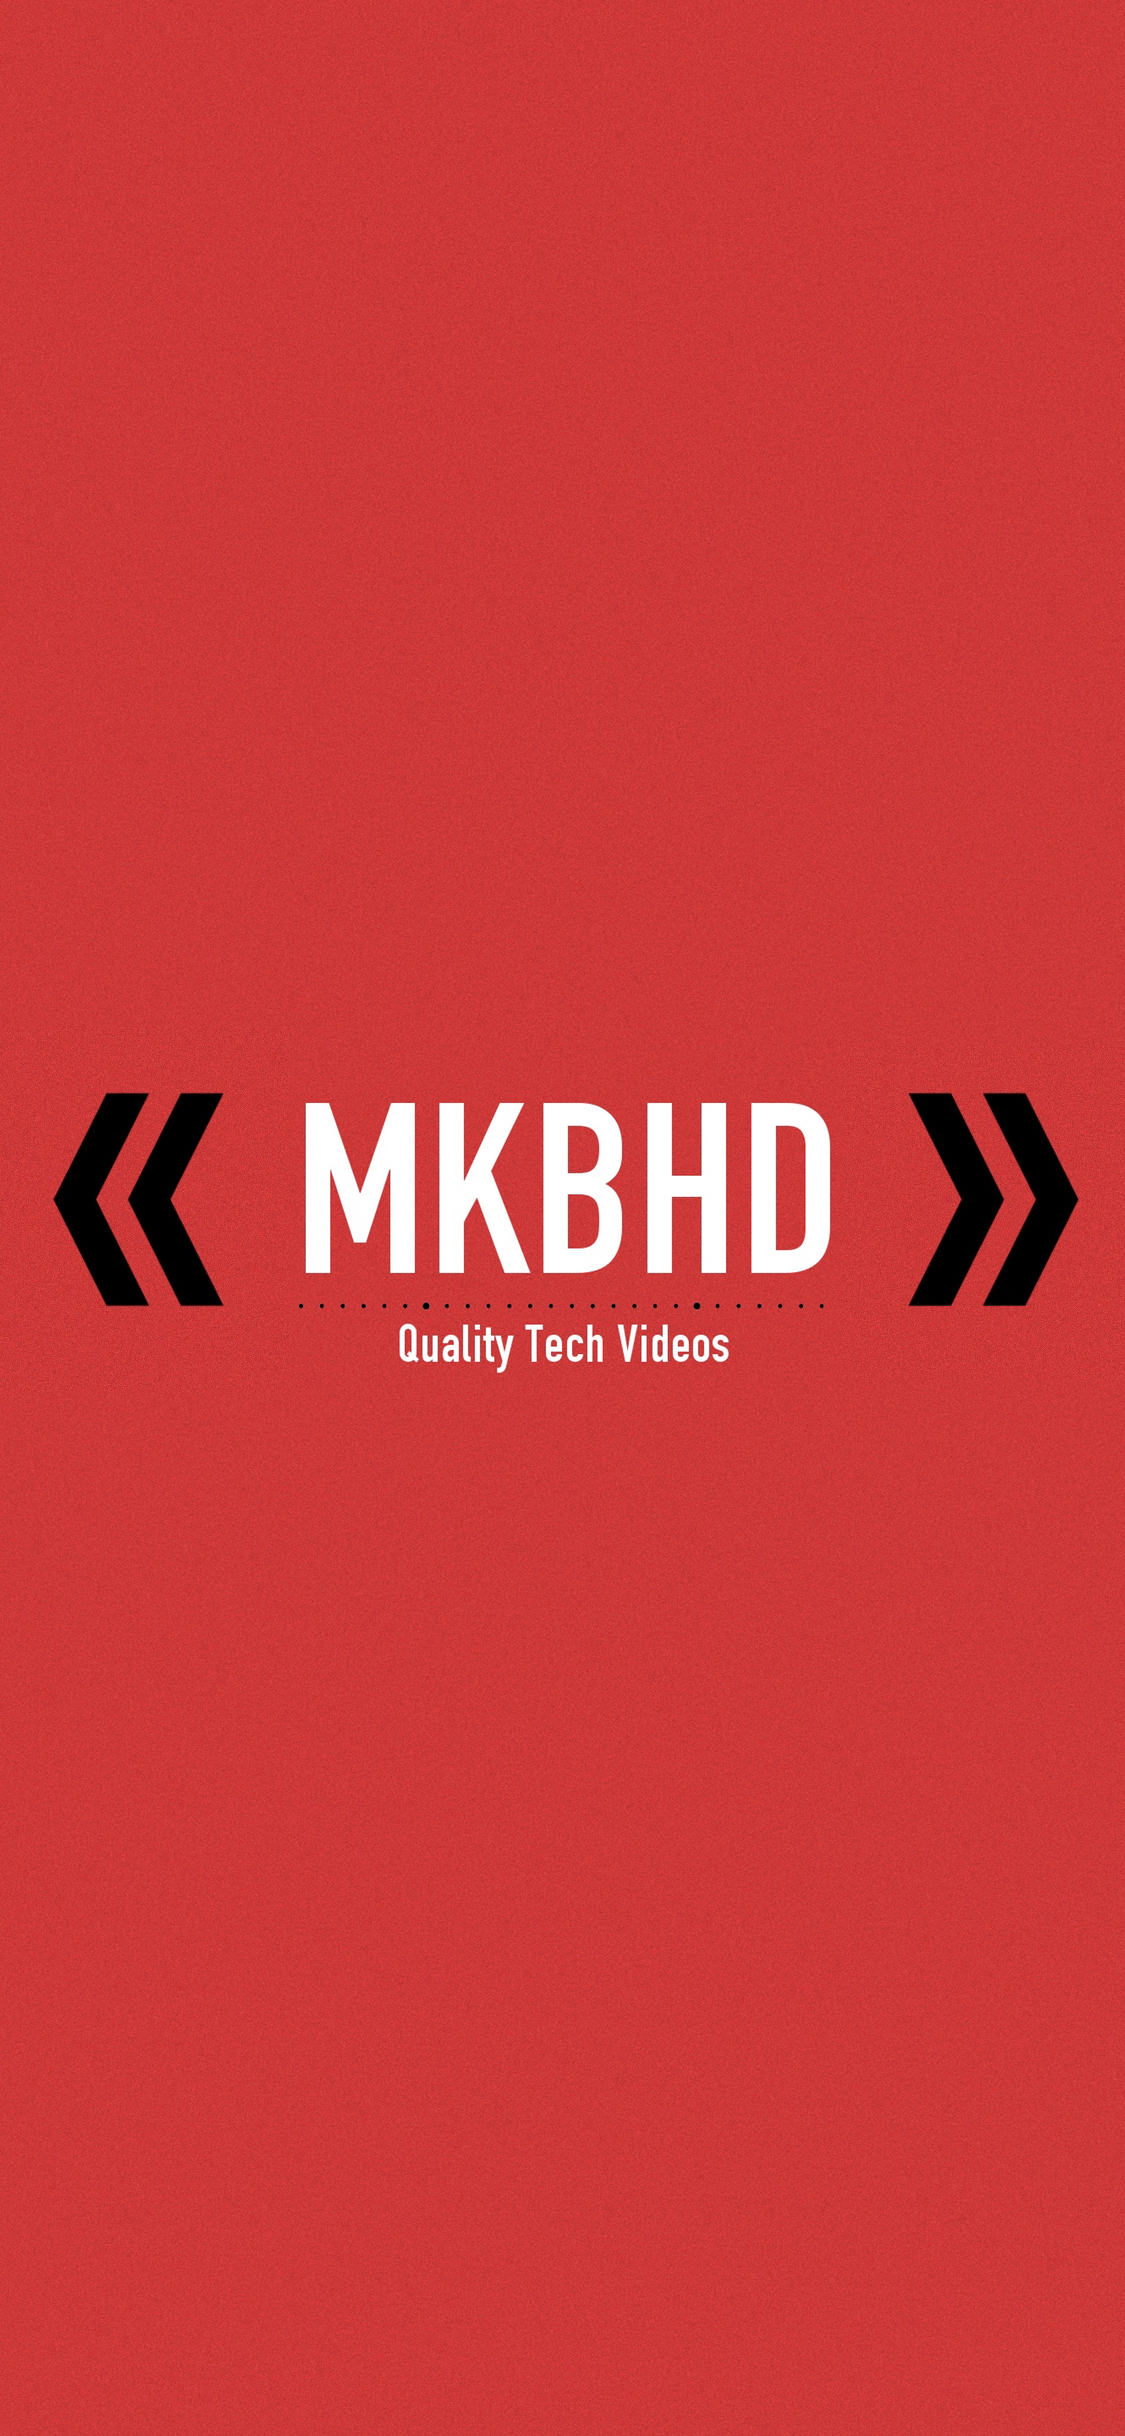 Official Mkbhd Wallpapers For Iphone Ipad Desktop